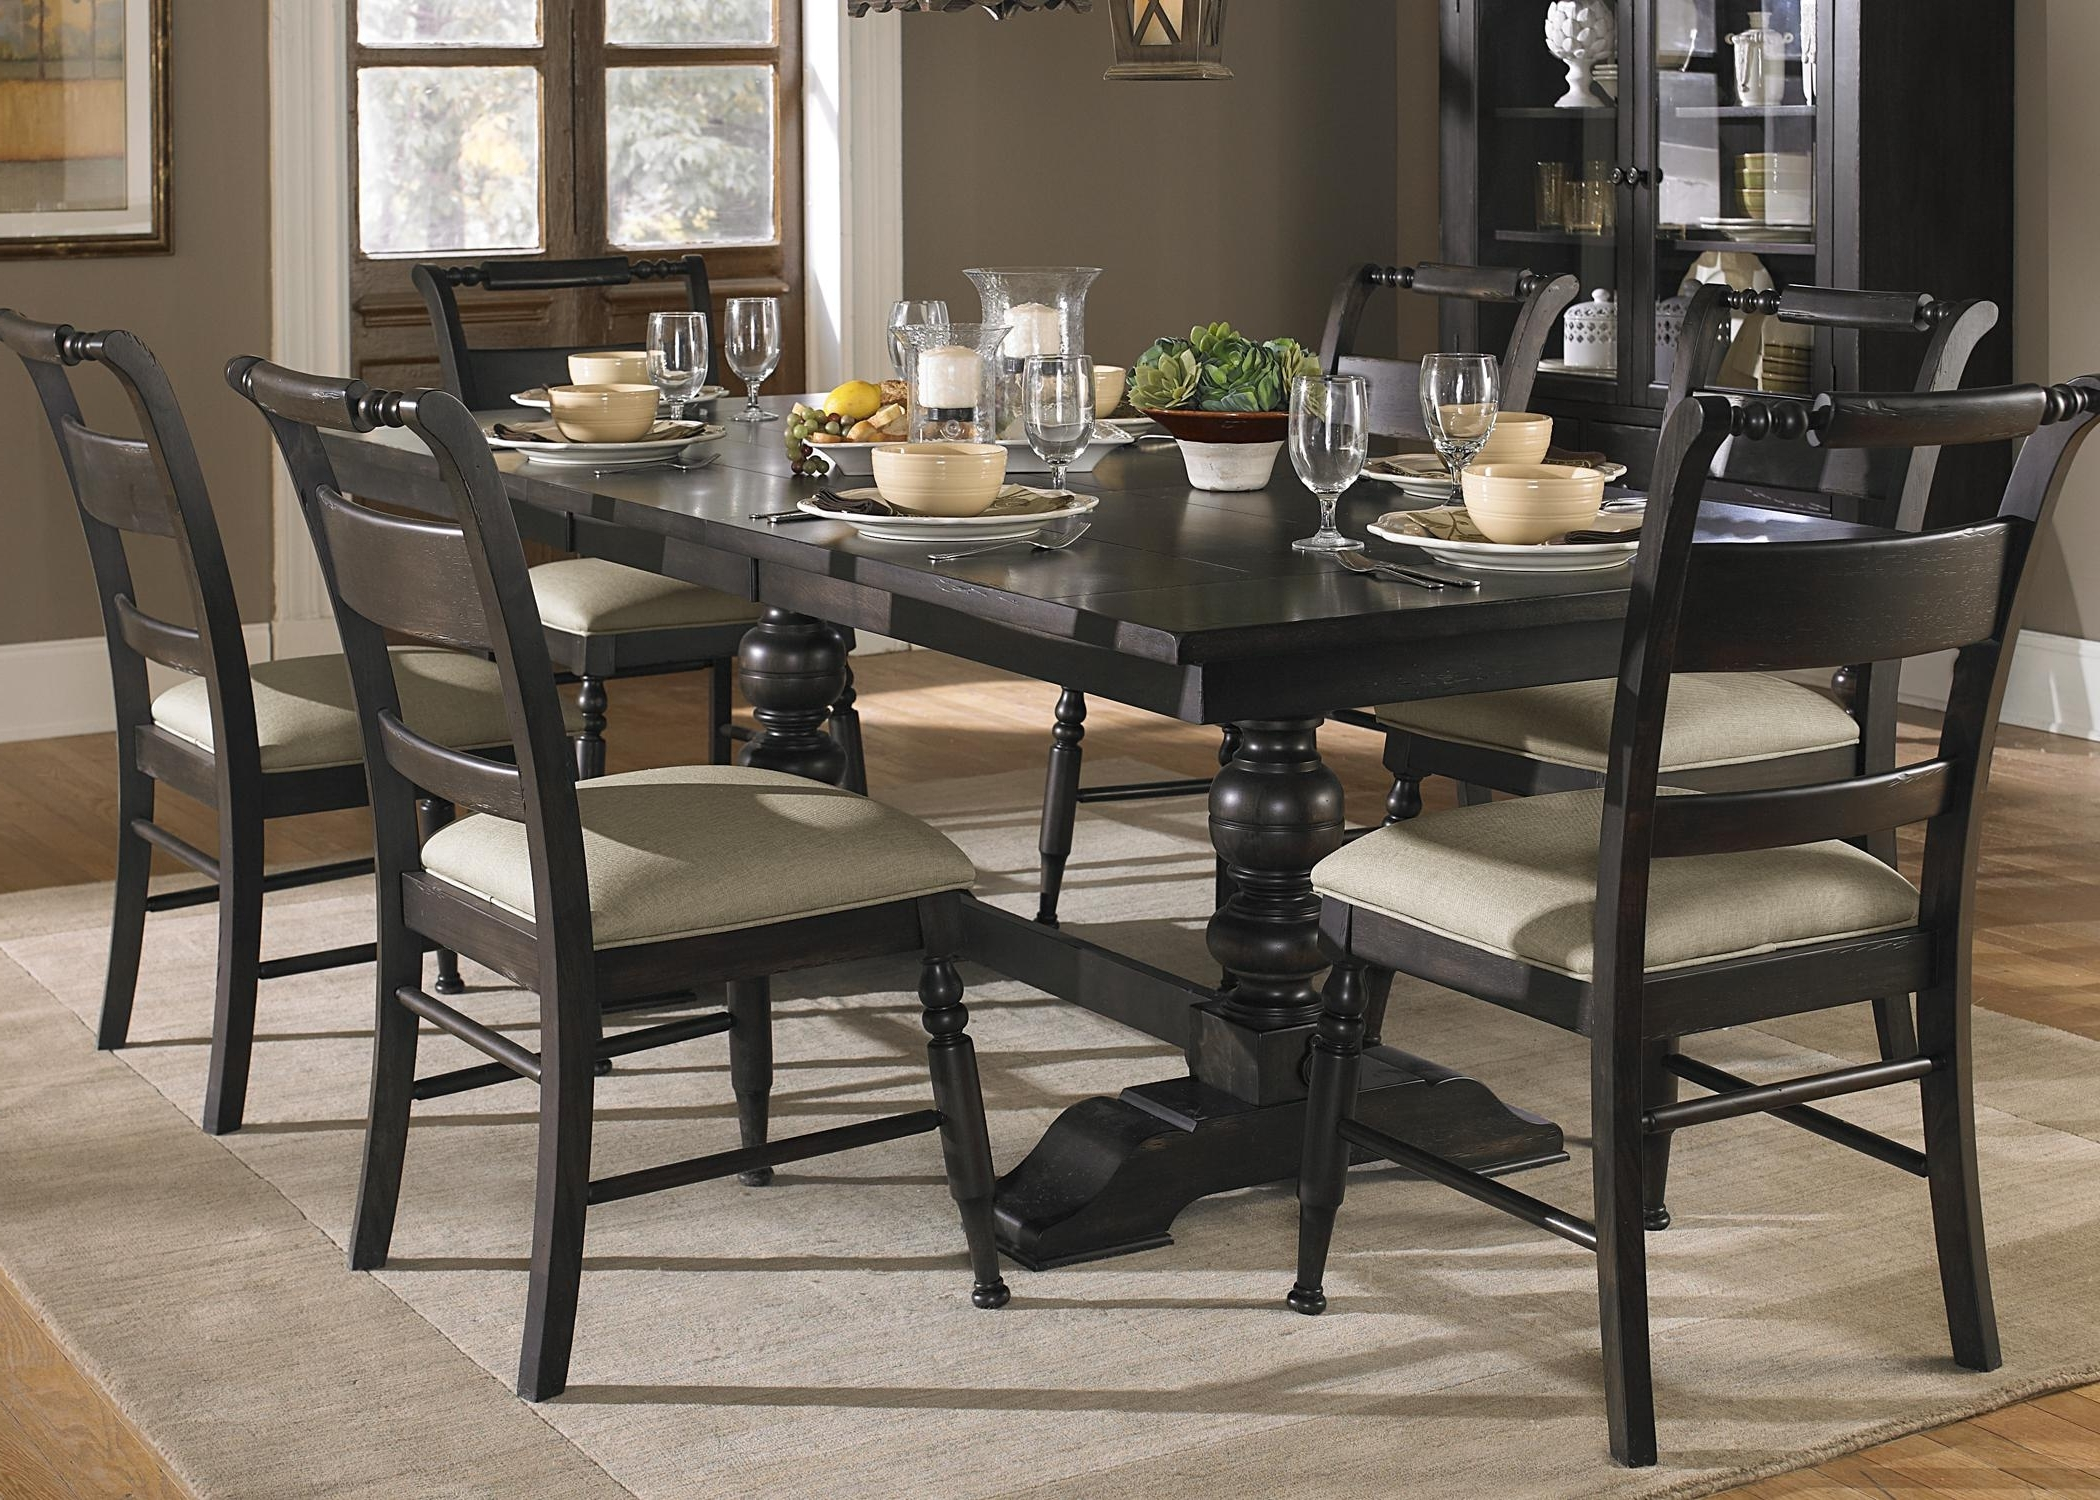 Attractive Design Trestle Dining Room Table — Boundless Table Ideas Pertaining To Recent Dining Room Tables (Gallery 19 of 25)